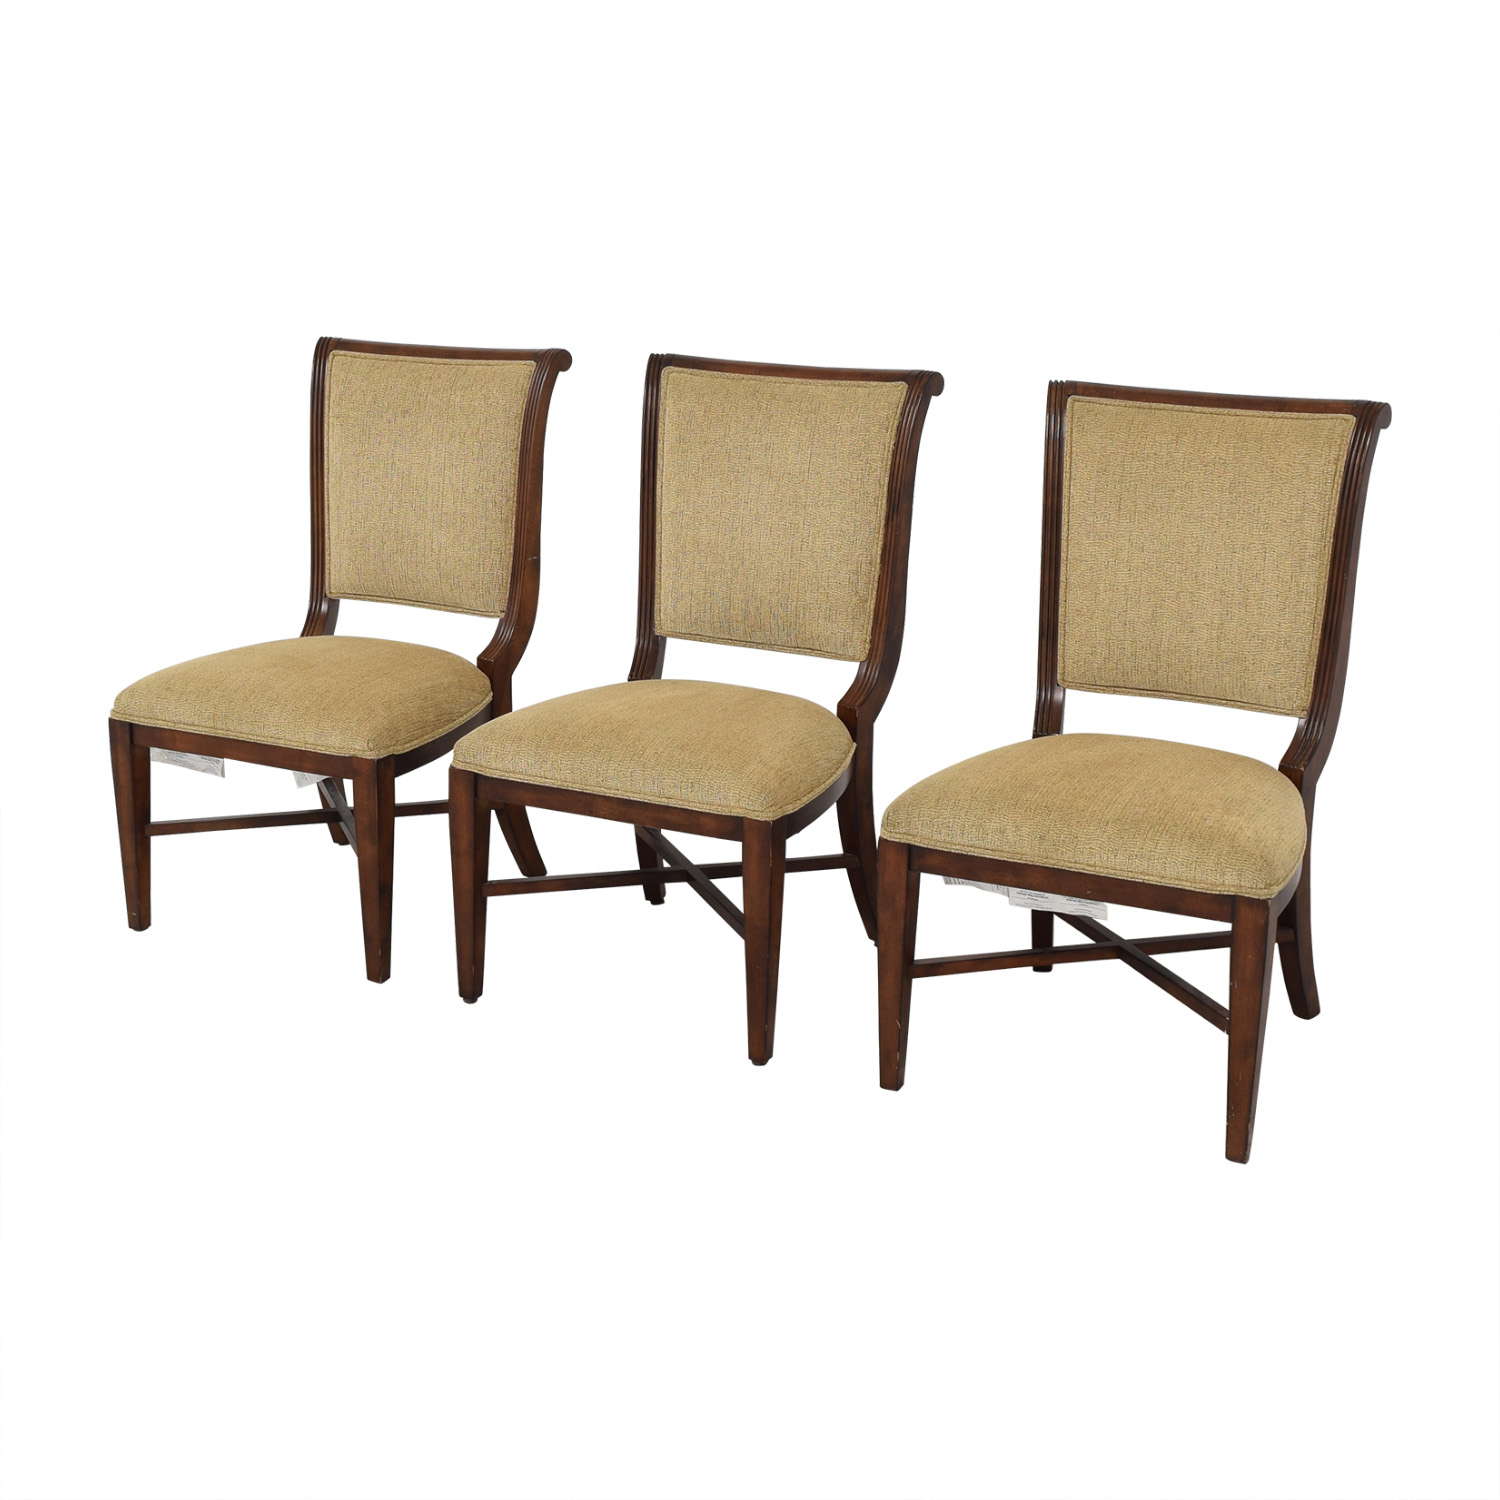 Lexington Furniture Lexington Furniture Upholstered Dining Chairs Dining Chairs